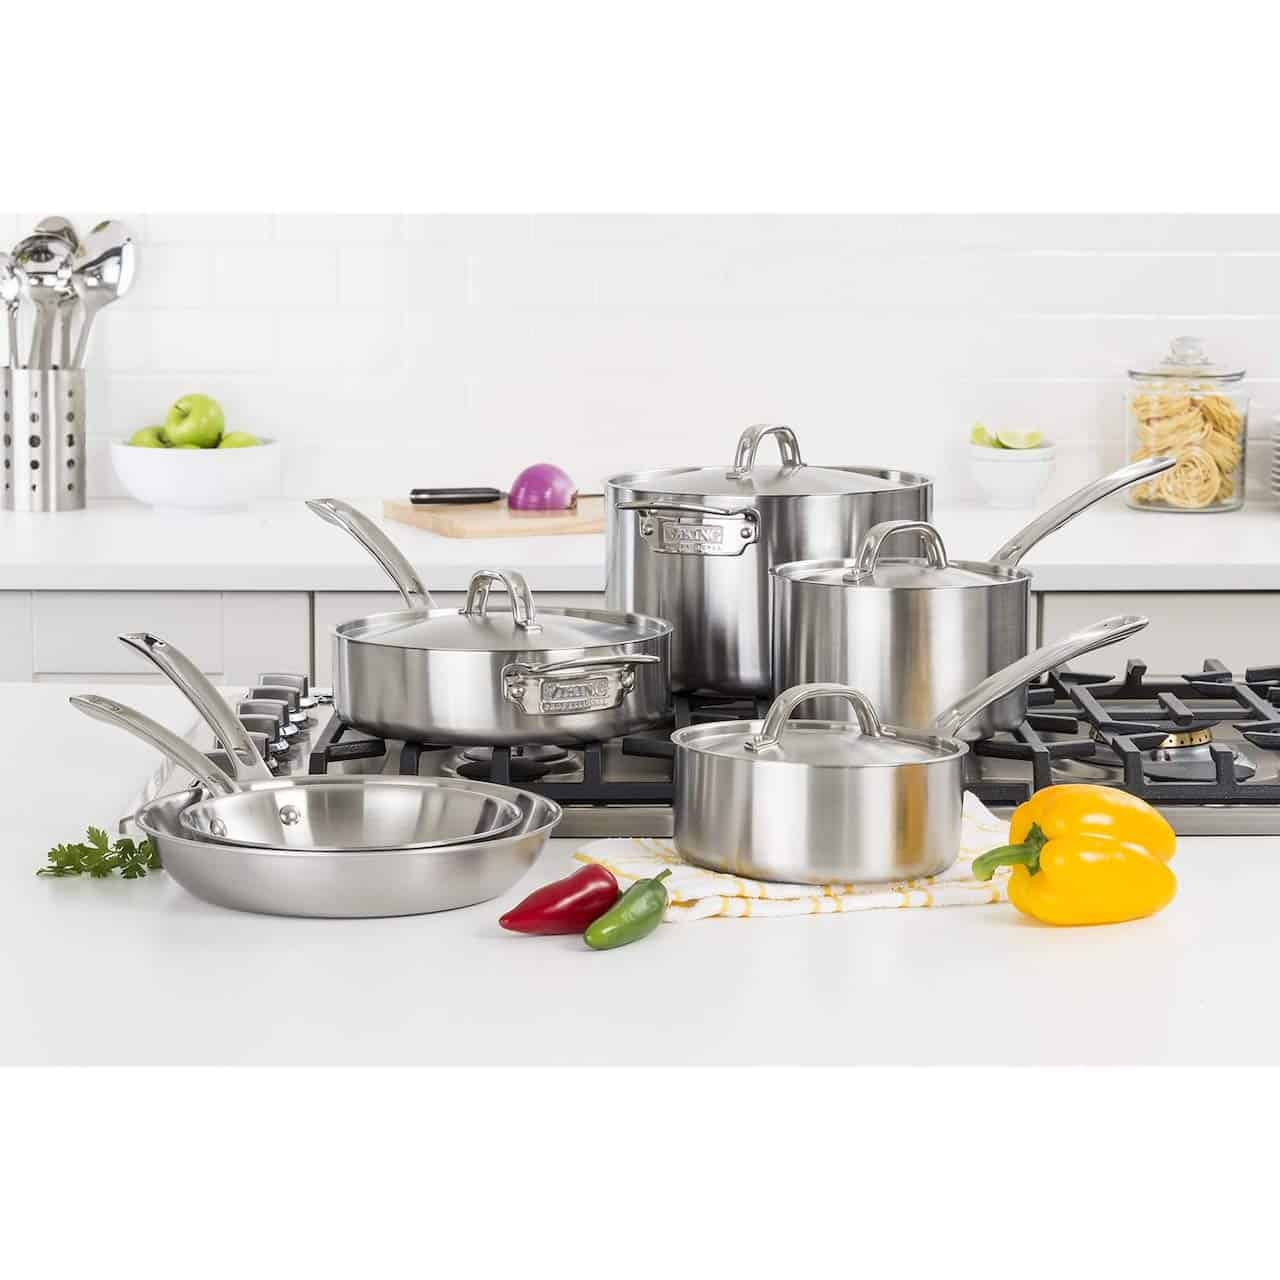 Best Cookware Set 2020.The 7 Best Stainless Steel Cookware Sets For 2020 Food Blog